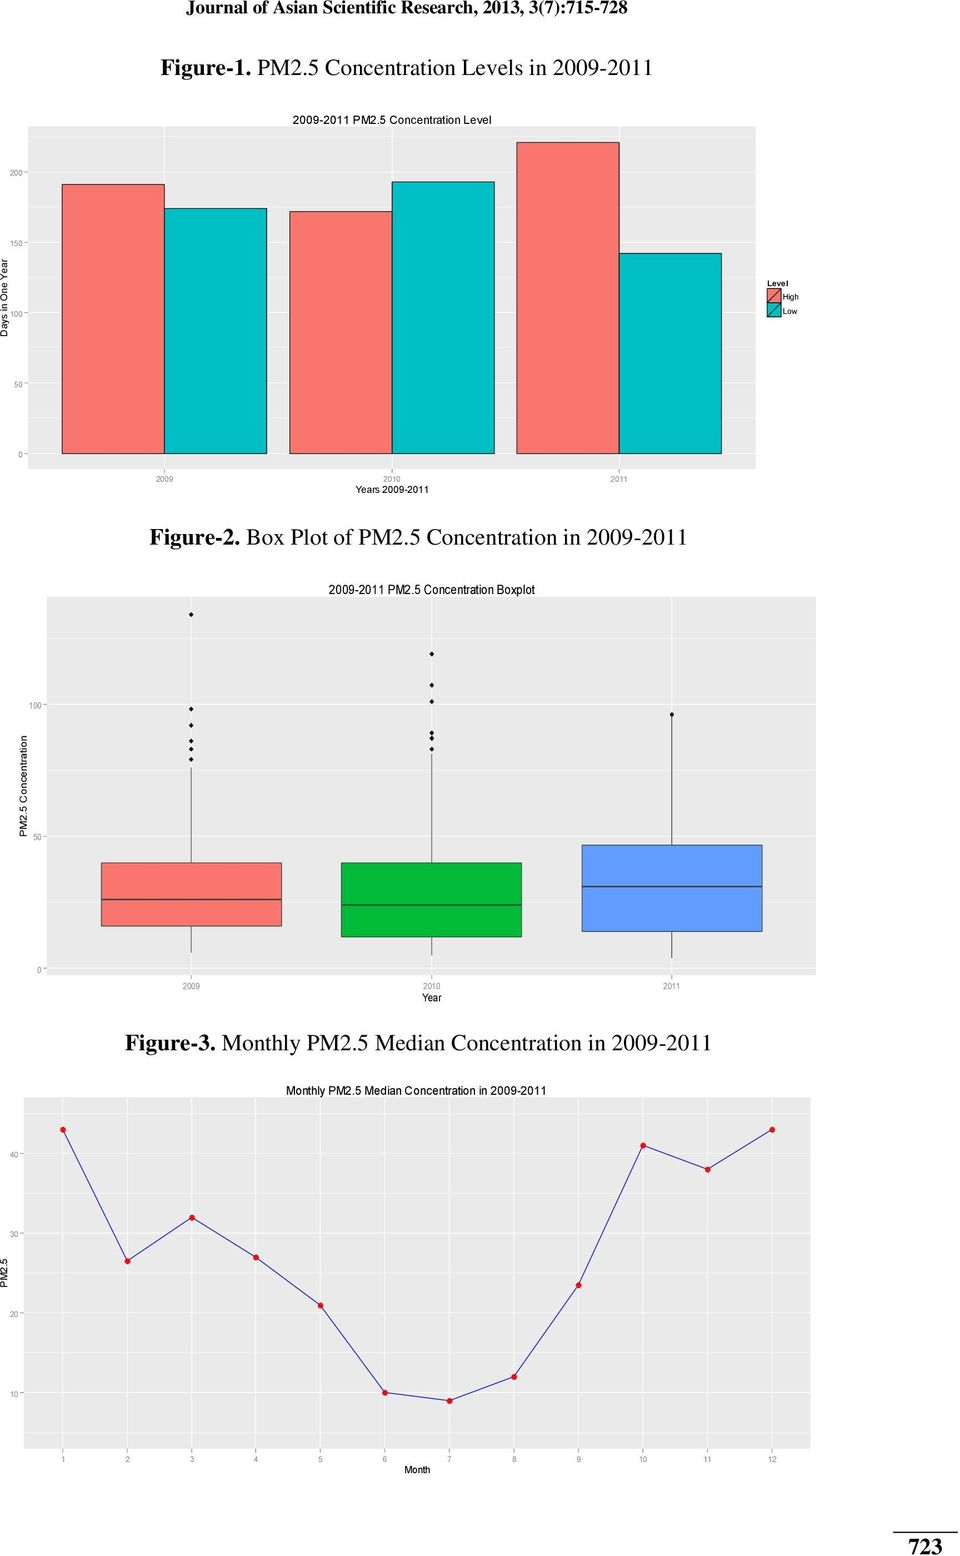 PM25 Concentration Boxplot 100 PM25 Concentration 50 0 2009 2010 2011 Year Figure-3 Monthly PM25 Median